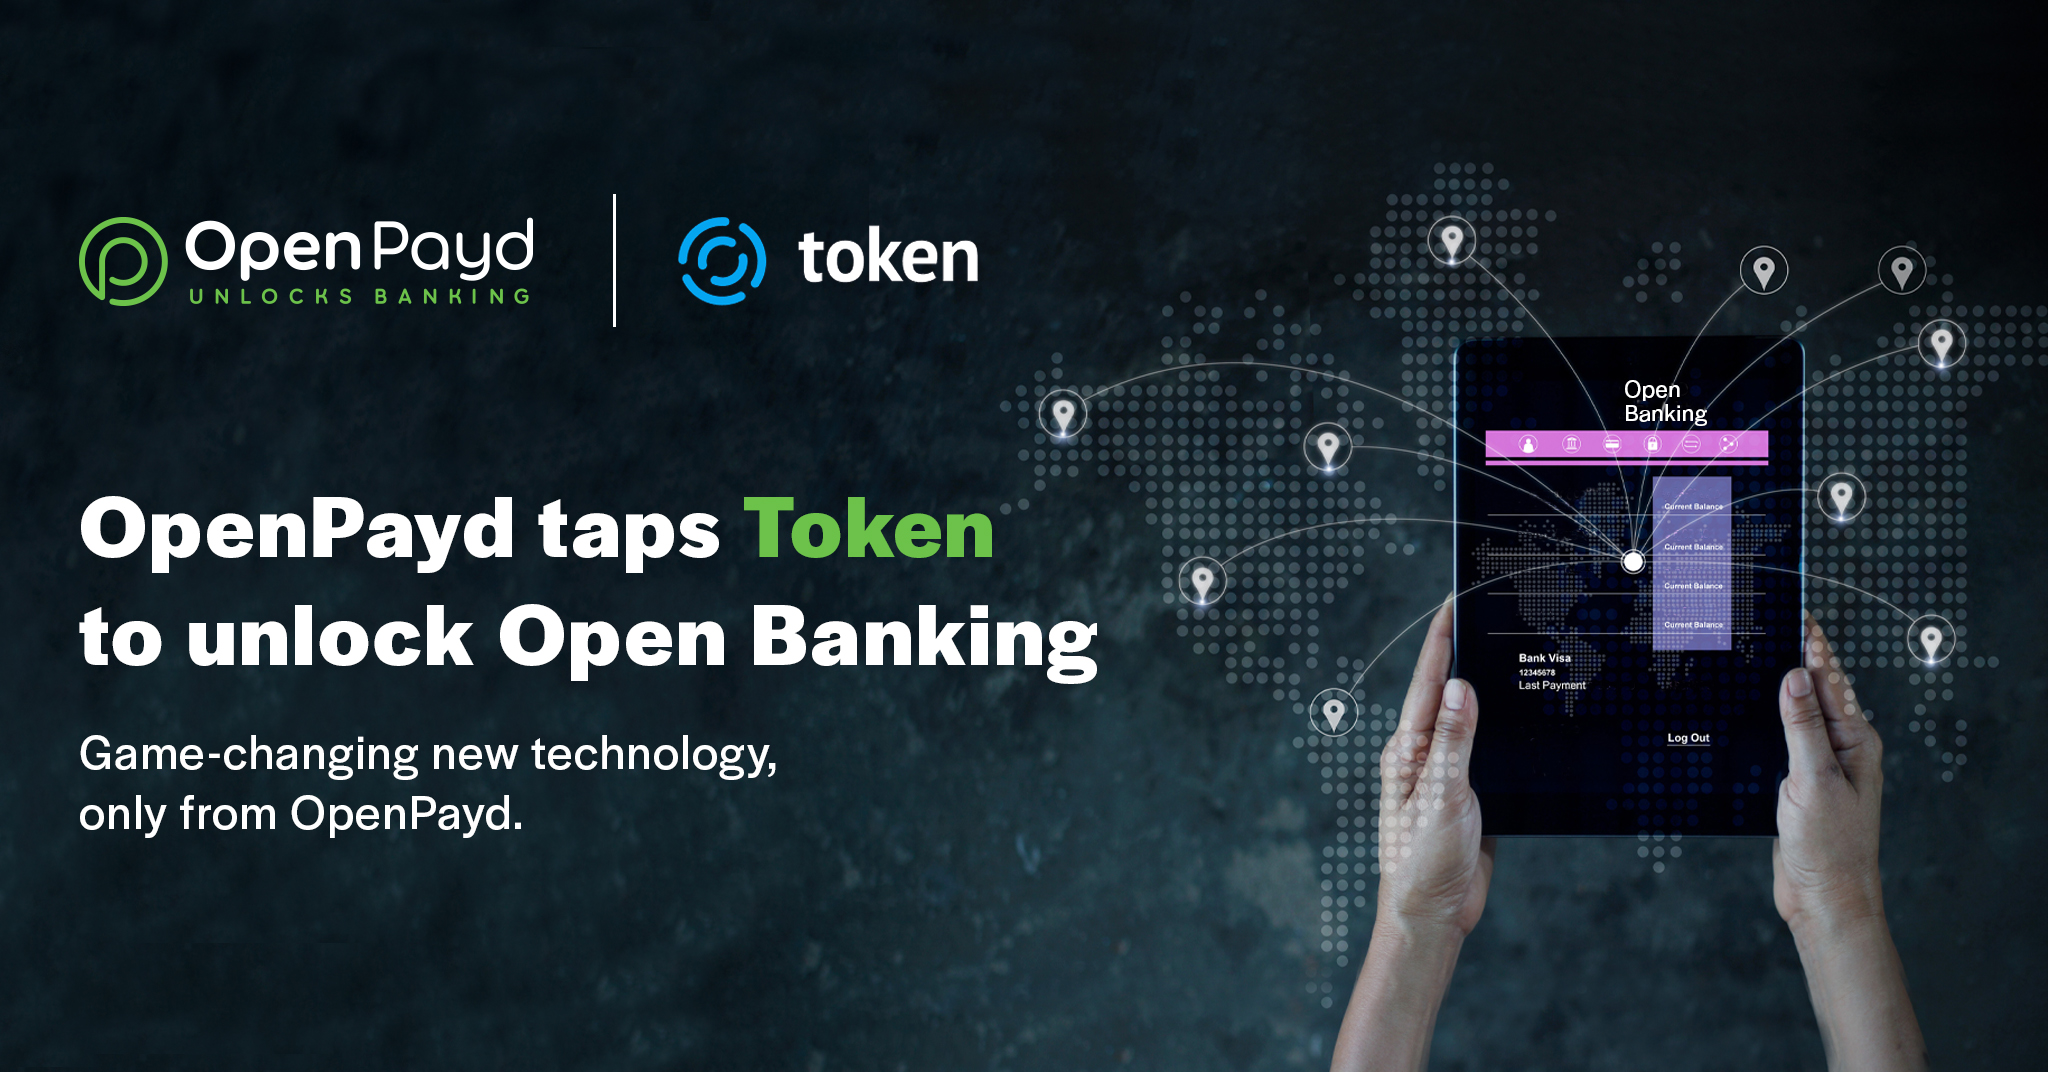 OpenPayd partners with Token to unlock Open Banking for business